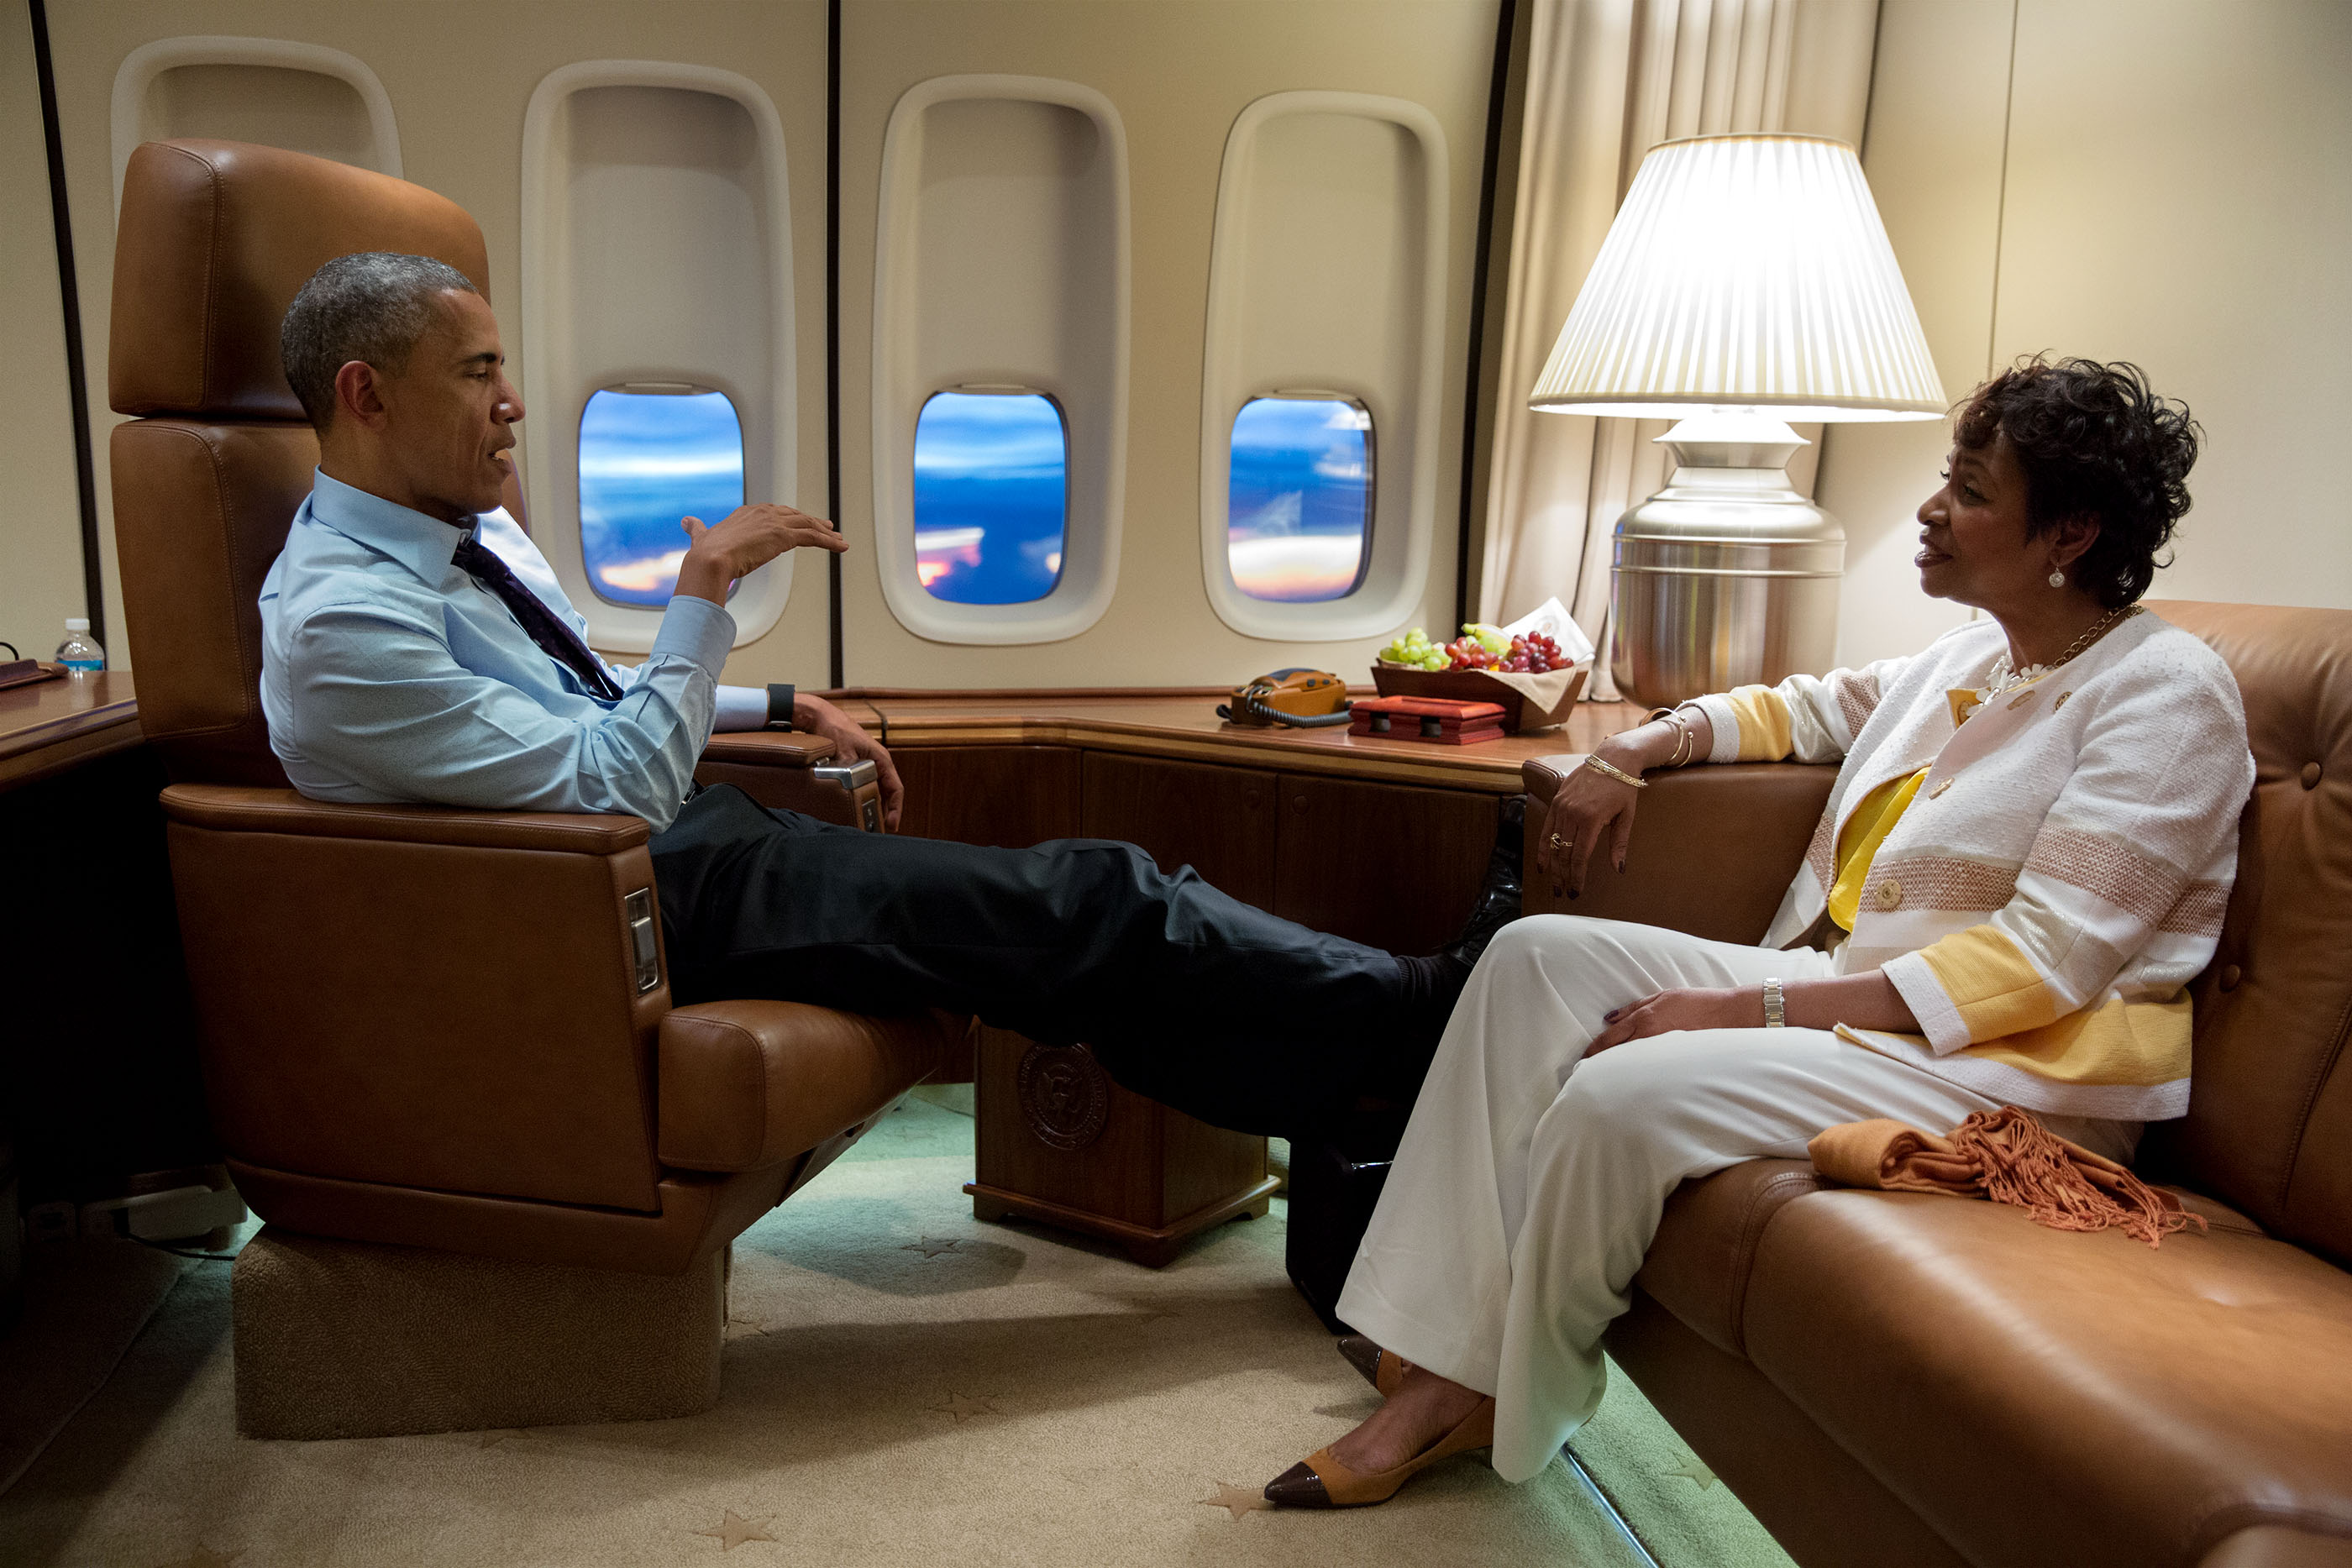 President Barack Obama meets with Rep. Yvette Clarke, D-N.Y., aboard Air Force One en route to Kingston, Jamaica, April 8, 2015. Rep. Clarke is the child of Jamaican immigrant parents. (Official White House Photo by Pete Souza)